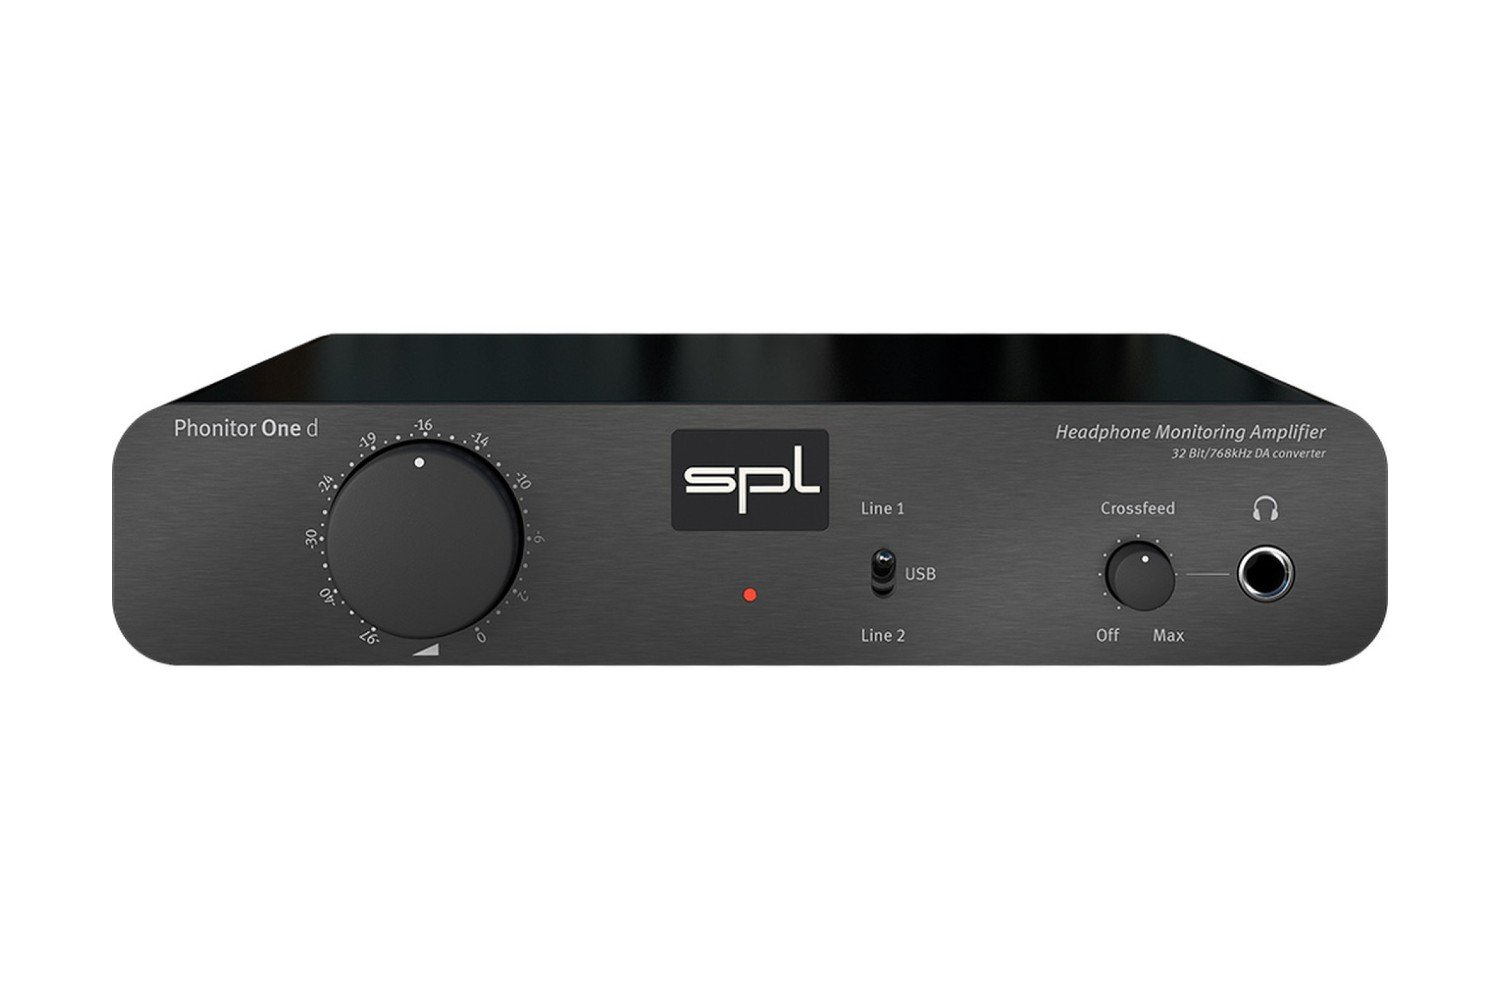 spl phonitor one d product shot front